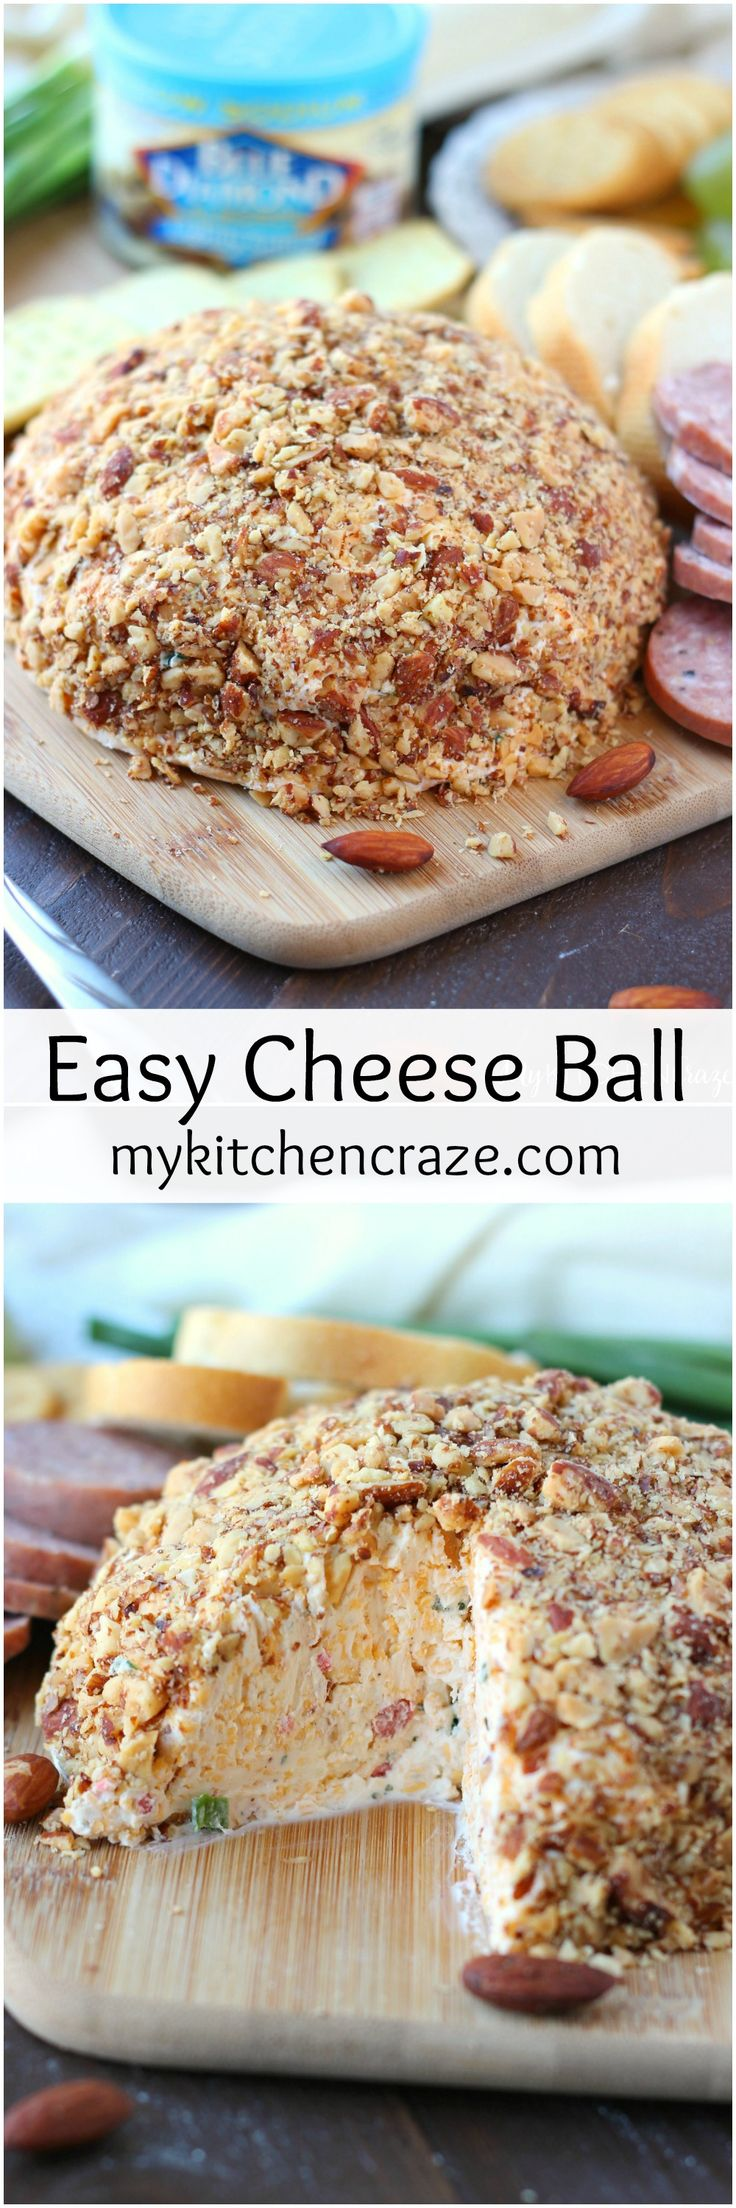 Easy Cheese Ball ~ mykitchencraze.com ~ A delicious Cheese Ball made with cream cheese, cheddar cheese, chives, bacon bits and garlic. This Easy Cheese Ball is a must make for your next party, family gathering or just because.